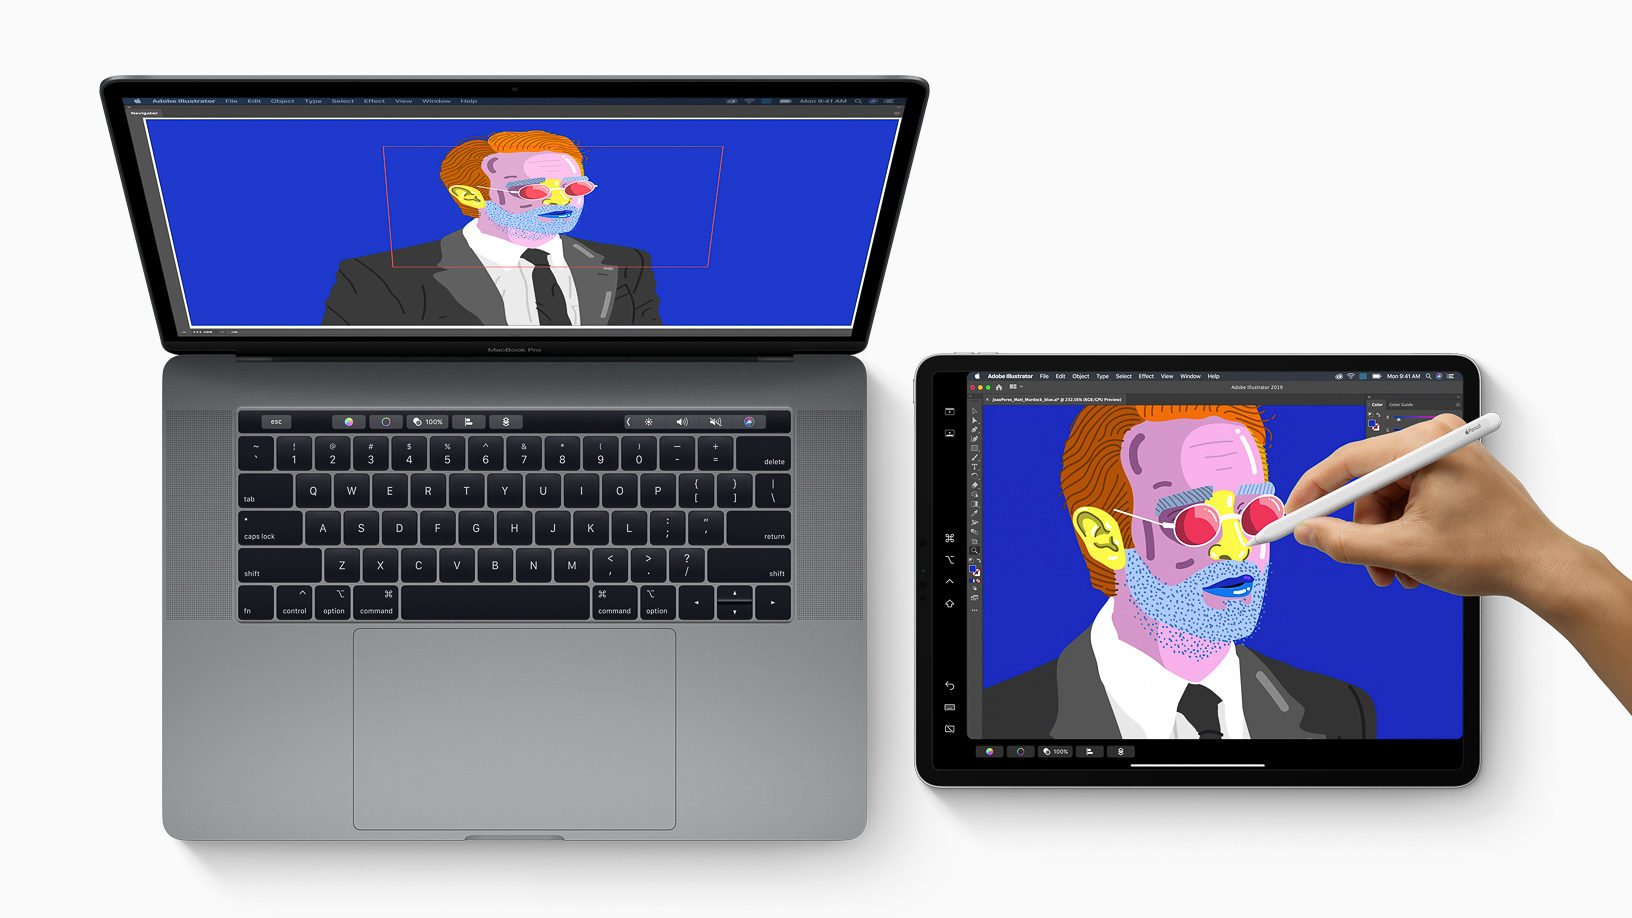 macOS 10.15 Sidecar feature